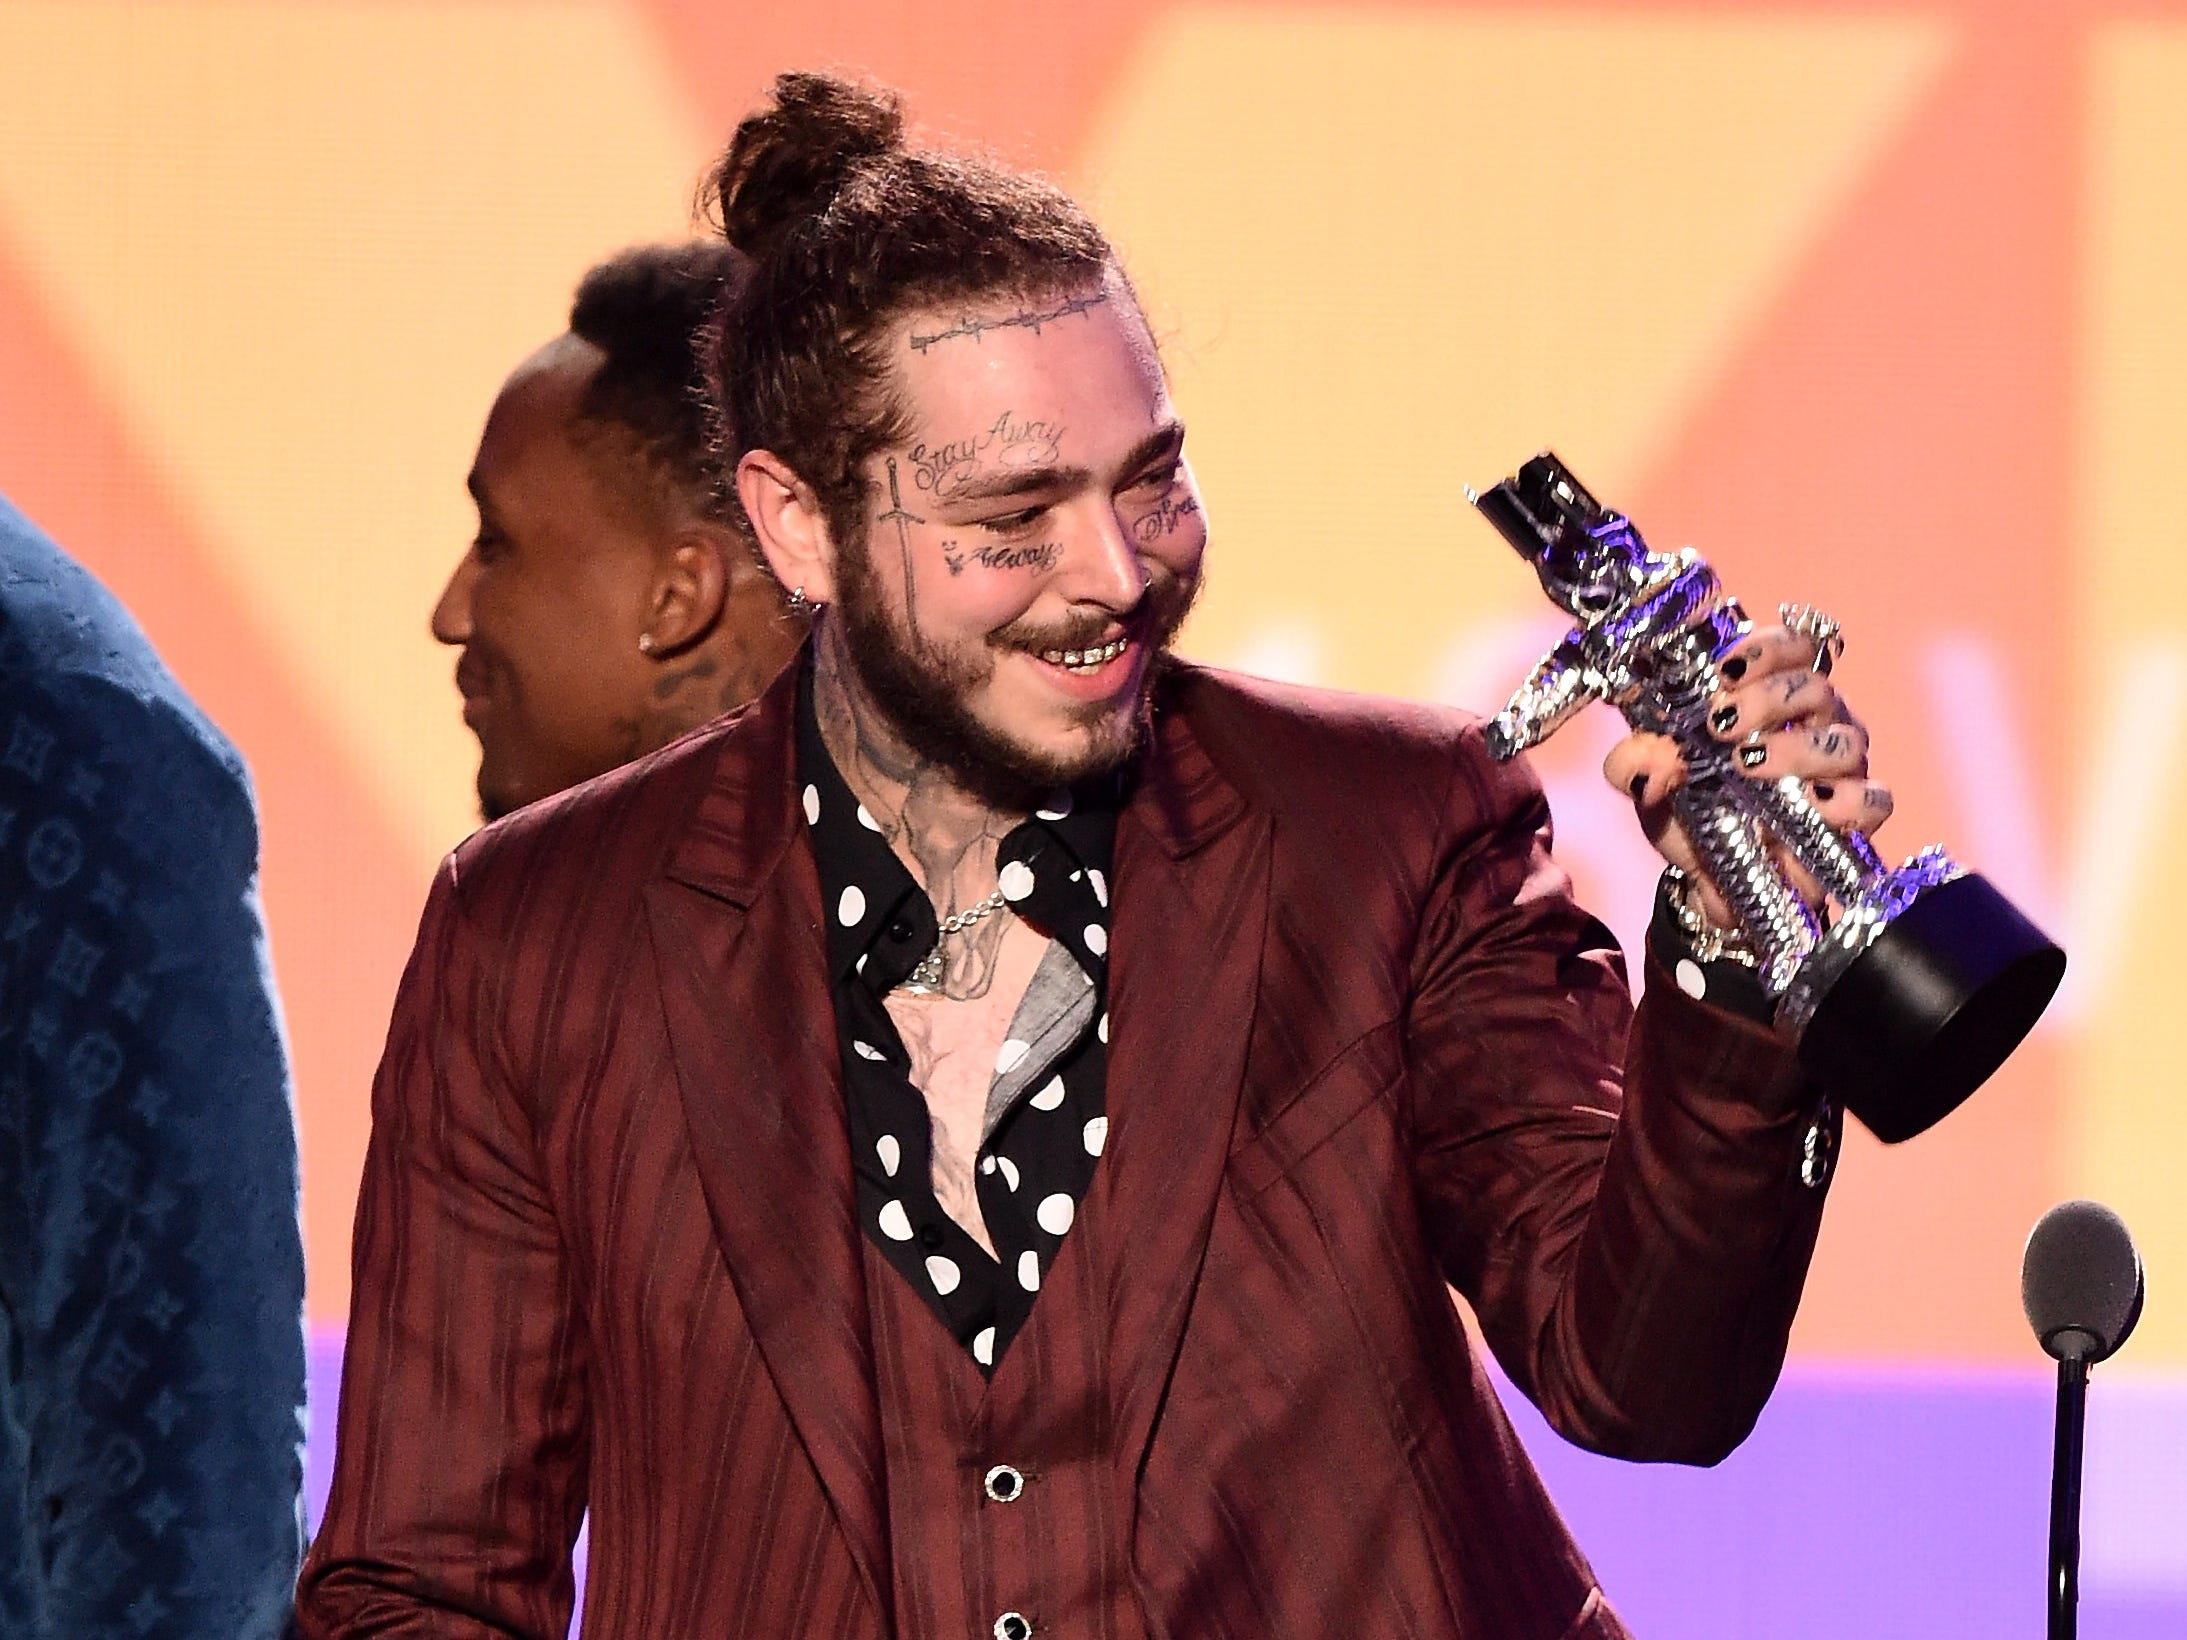 NEW YORK, NY - AUGUST 20:  Post Malone accepts the award for Song of the Year onstage during the 2018 MTV Video Music Awards at Radio City Music Hall on August 20, 2018 in New York City.  (Photo by Michael Loccisano/Getty Images for MTV) ORG XMIT: 775210297 ORIG FILE ID: 1020371410